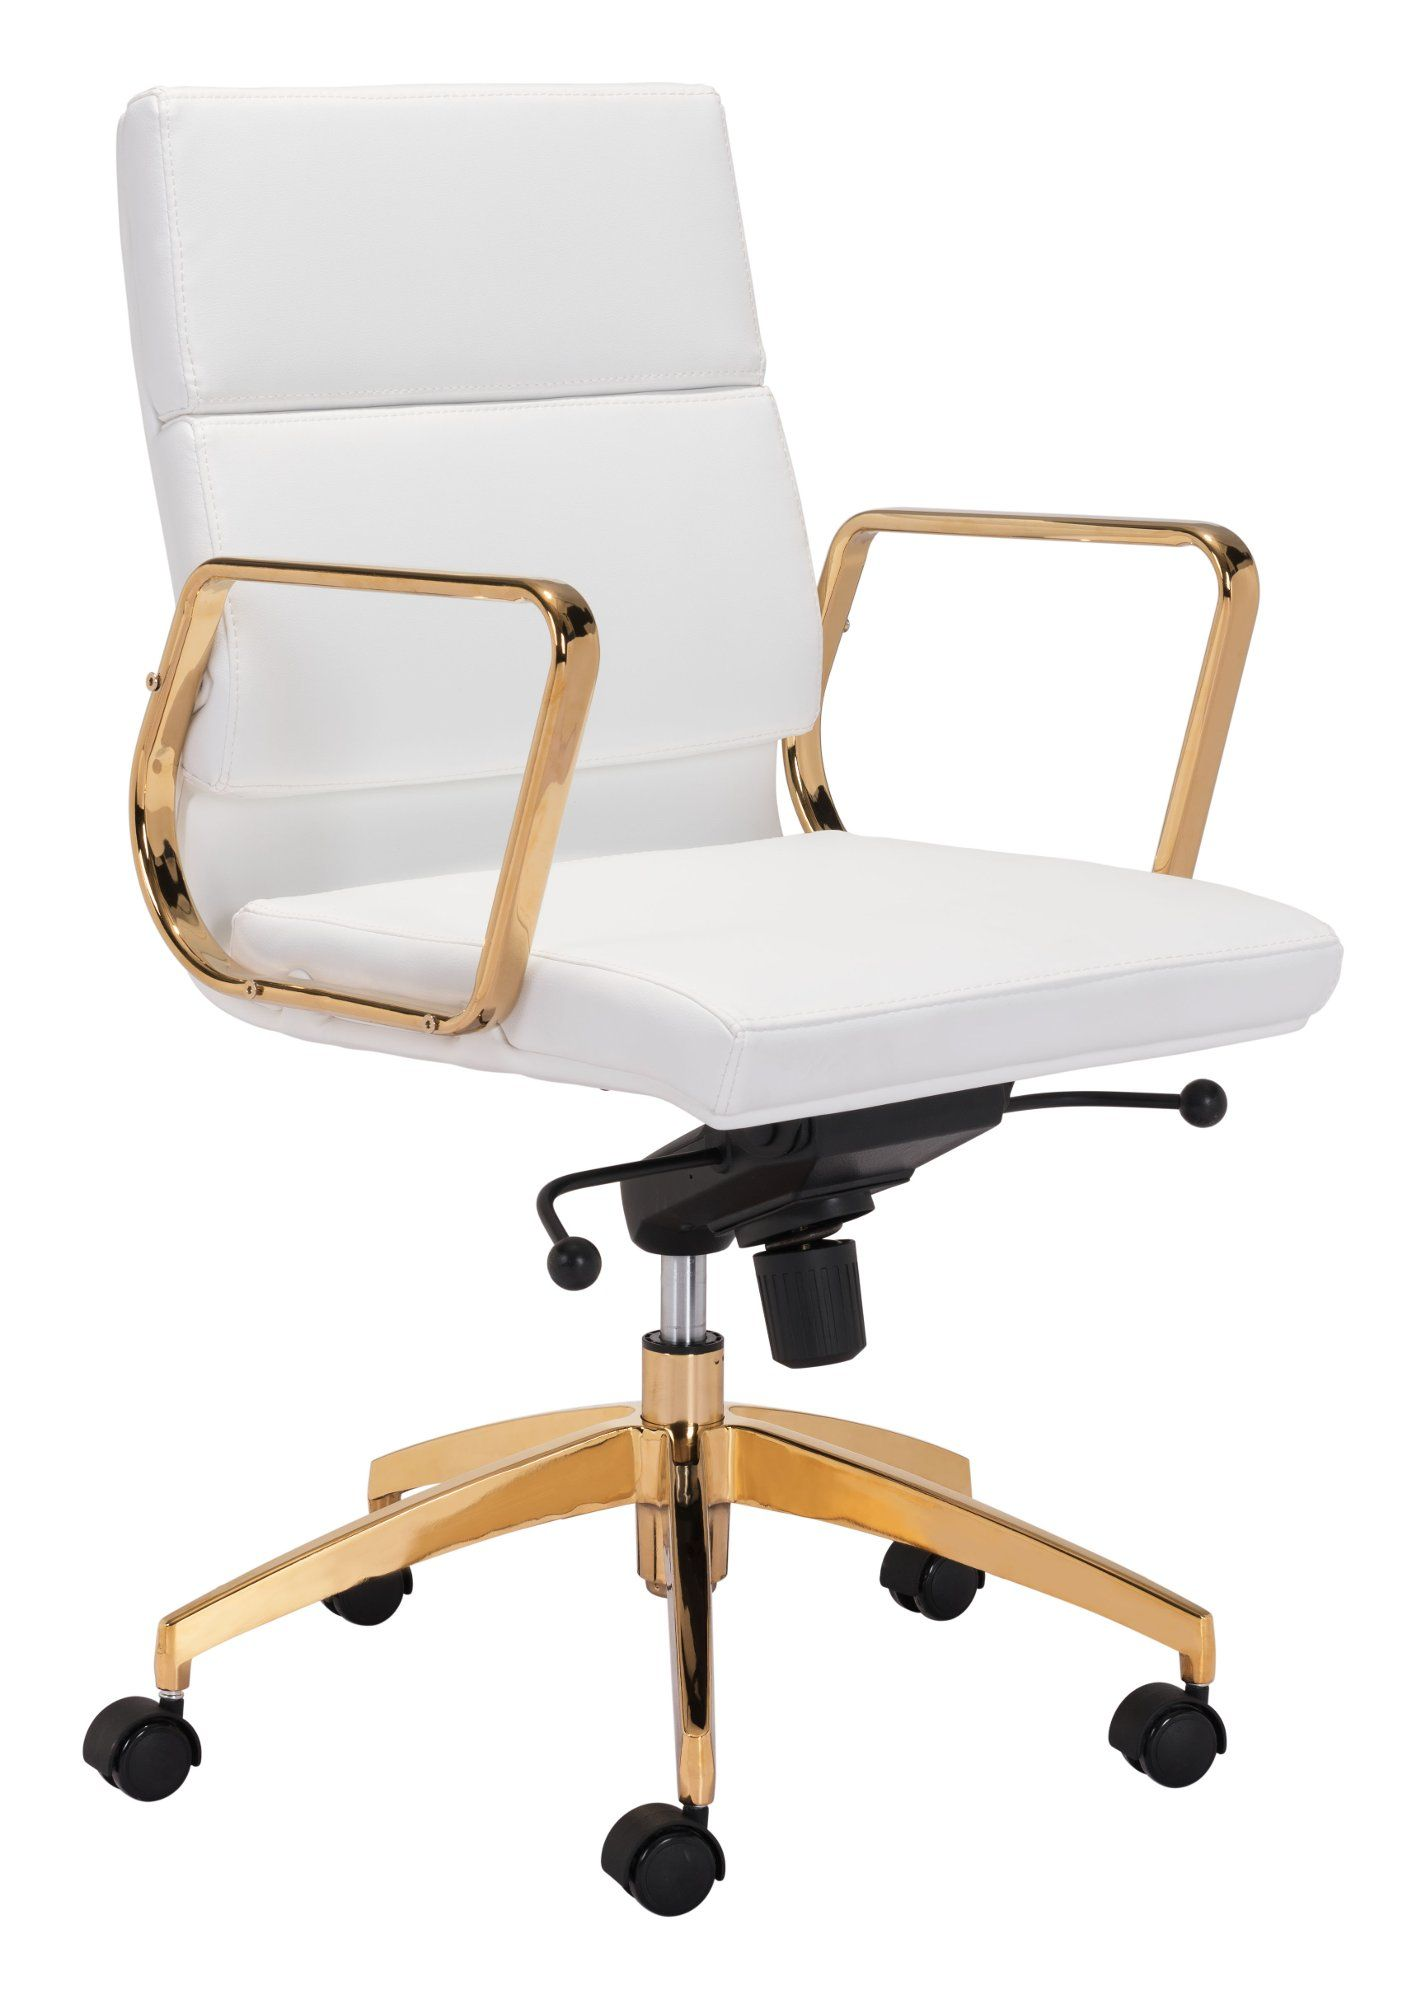 Sleek And Sassy White And Gold Office Chair Scientist White Leather Office Chair Chair Black Office Chair